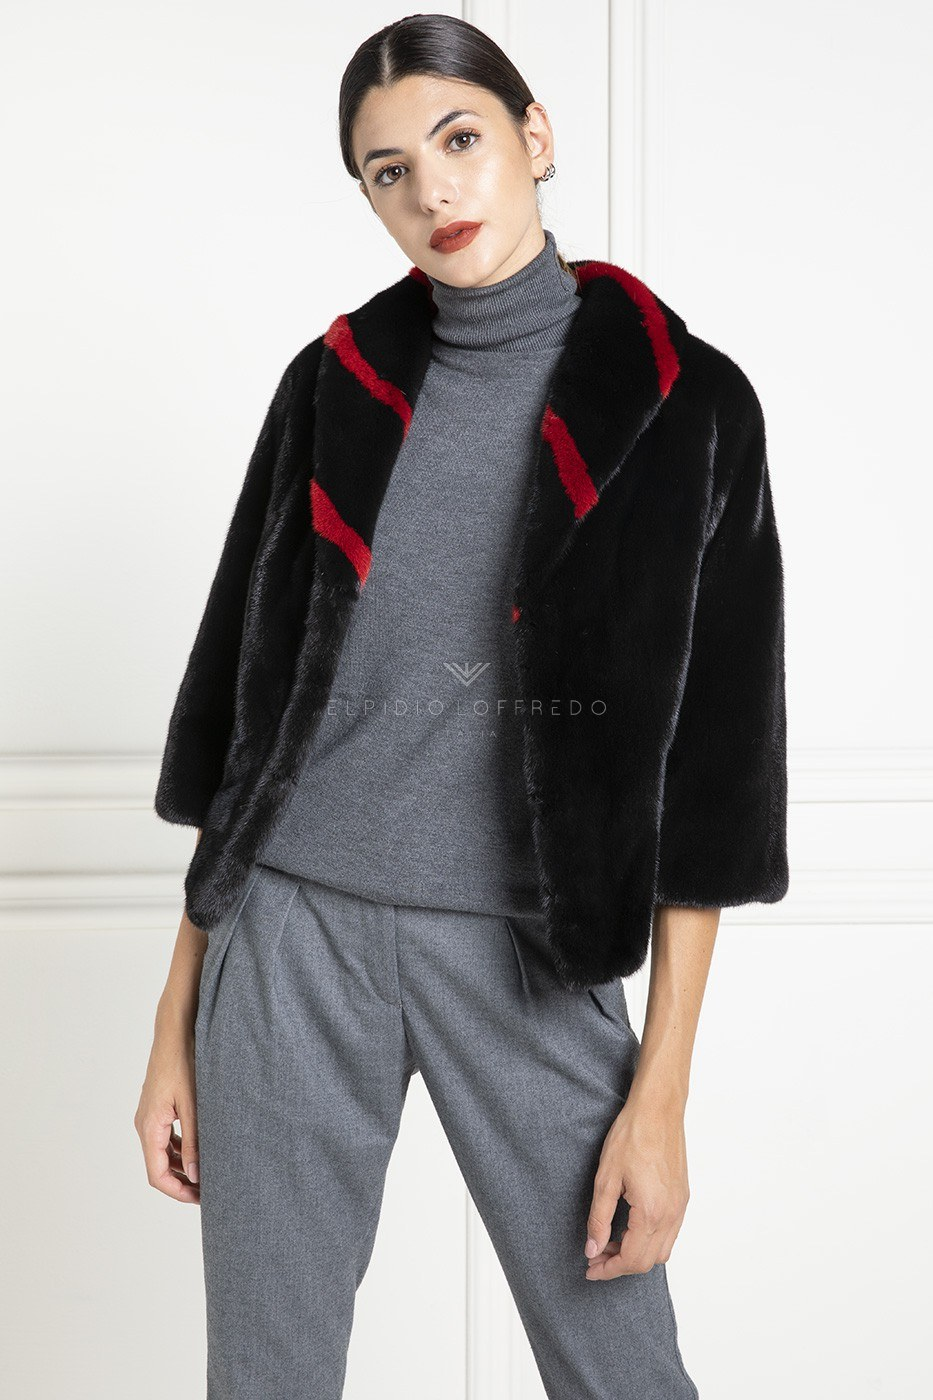 Black and Red Mink Jacket - Length 50 cm